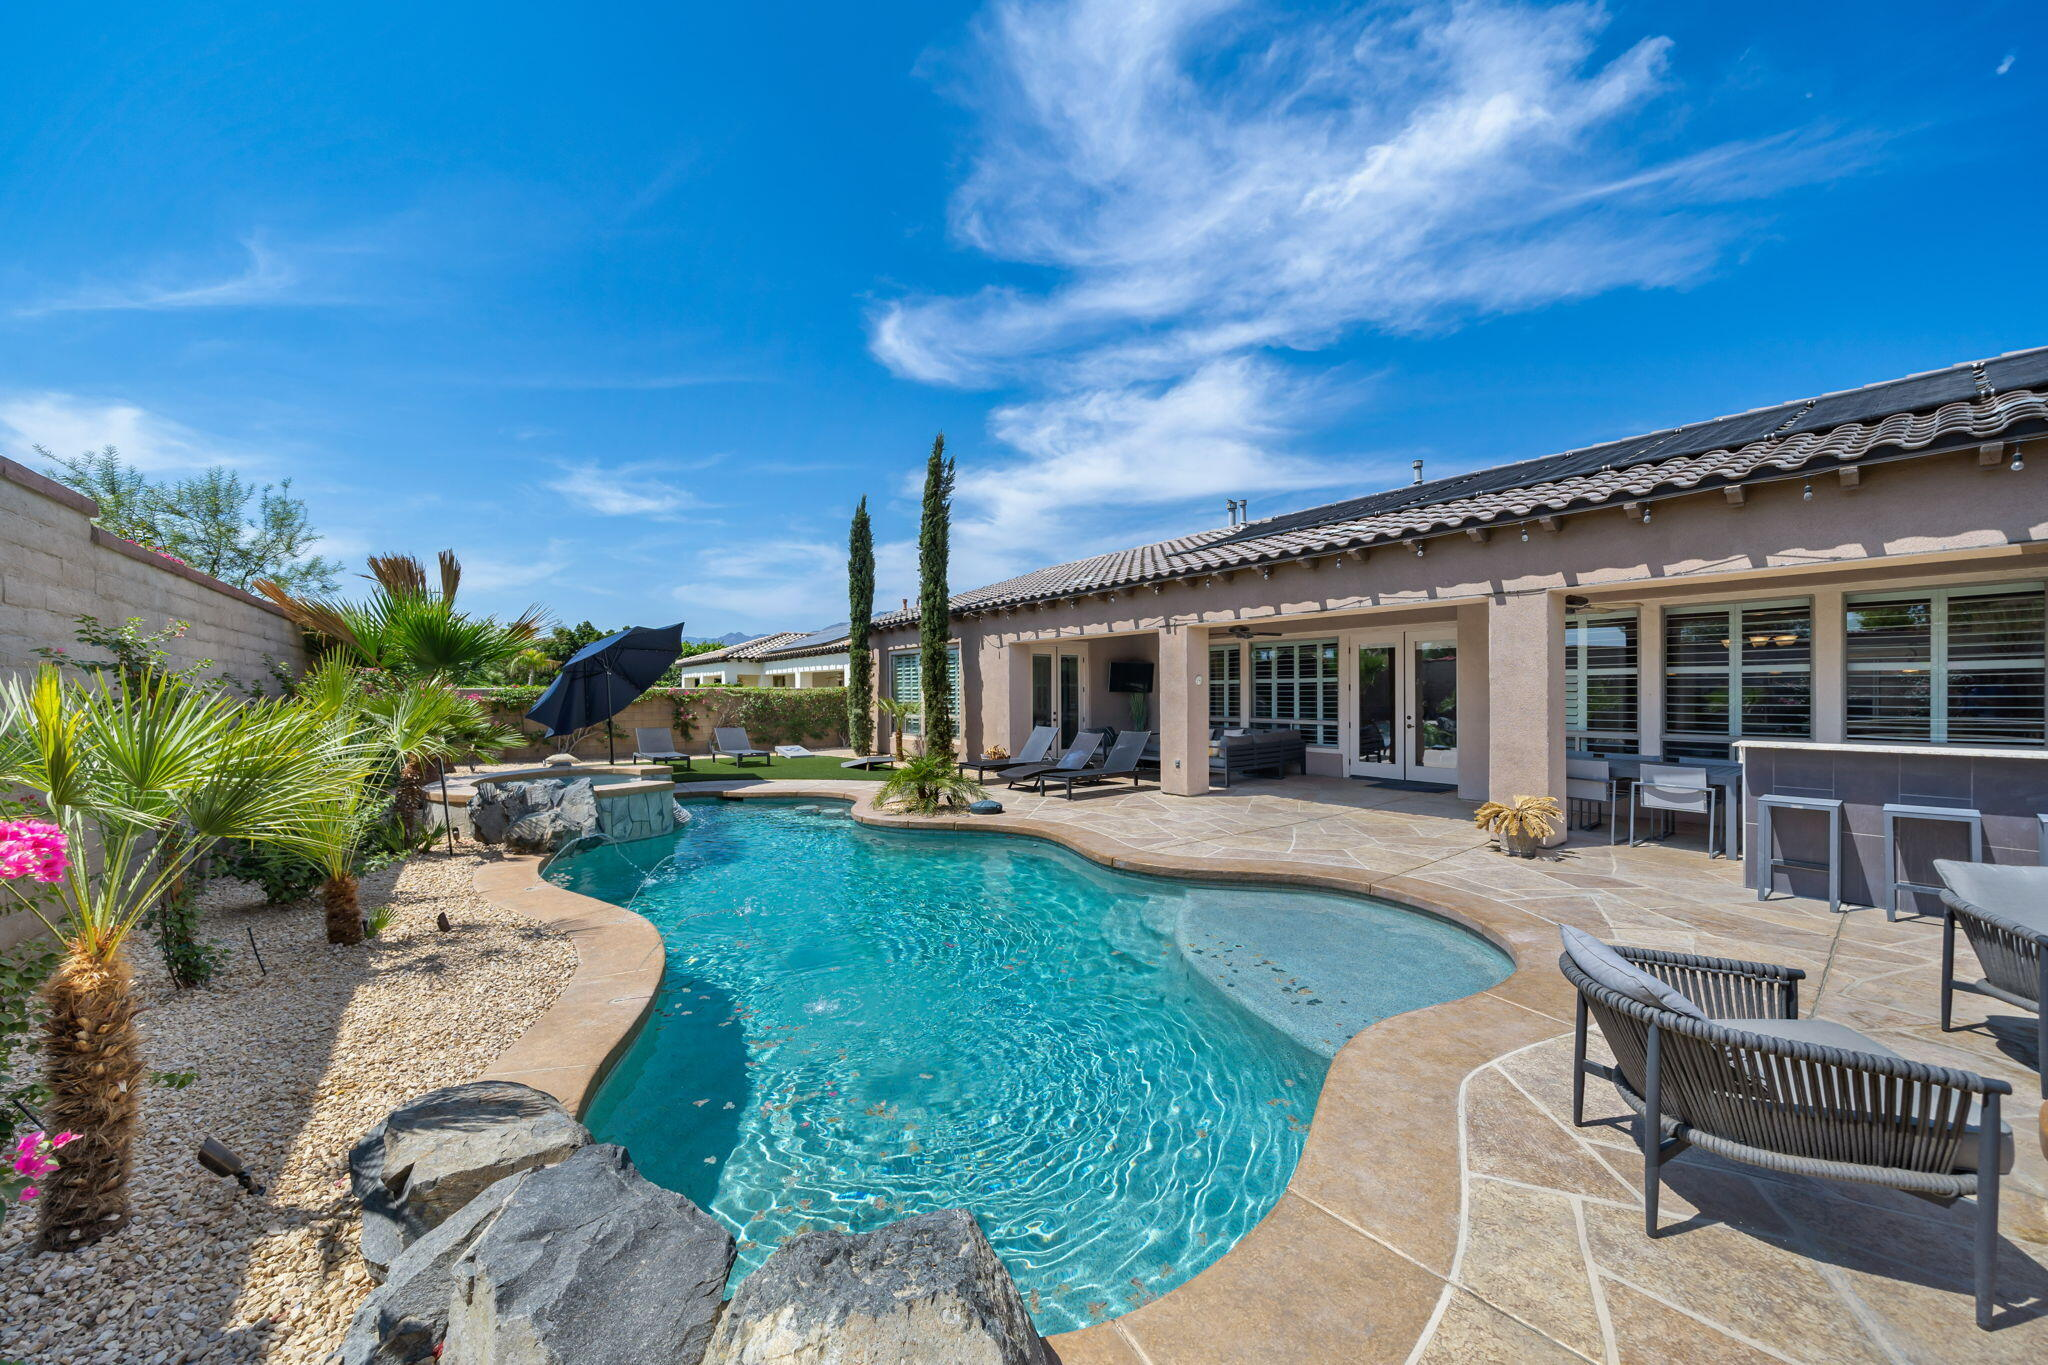 Here is your chance to buy in the highly sought-after community of Montage at Santa Rosa. Montage is located within walking distance to Coachella and Stagecoach...and the HOA allows SHORT-TERM rentals...which allows for incredible money-making potential. This popular floor plan consists of 5 bedrooms (including a casita), 4.5 bathrooms as well as a game room. Offered fully, furnished...this is the opportunity you have been waiting for! The backyard highlights include a sparkling pool and spa, misters, putting green, fire pit, grassy play space and an incredible outdoor kitchen. The back yard is so amazing, it was featured in the summer issue of Sunset Magazine! These Montage properties fly off the market, schedule your private tour today. Showing days/times are limited, as this popular property has guest stays booked throughout the rest of the year.